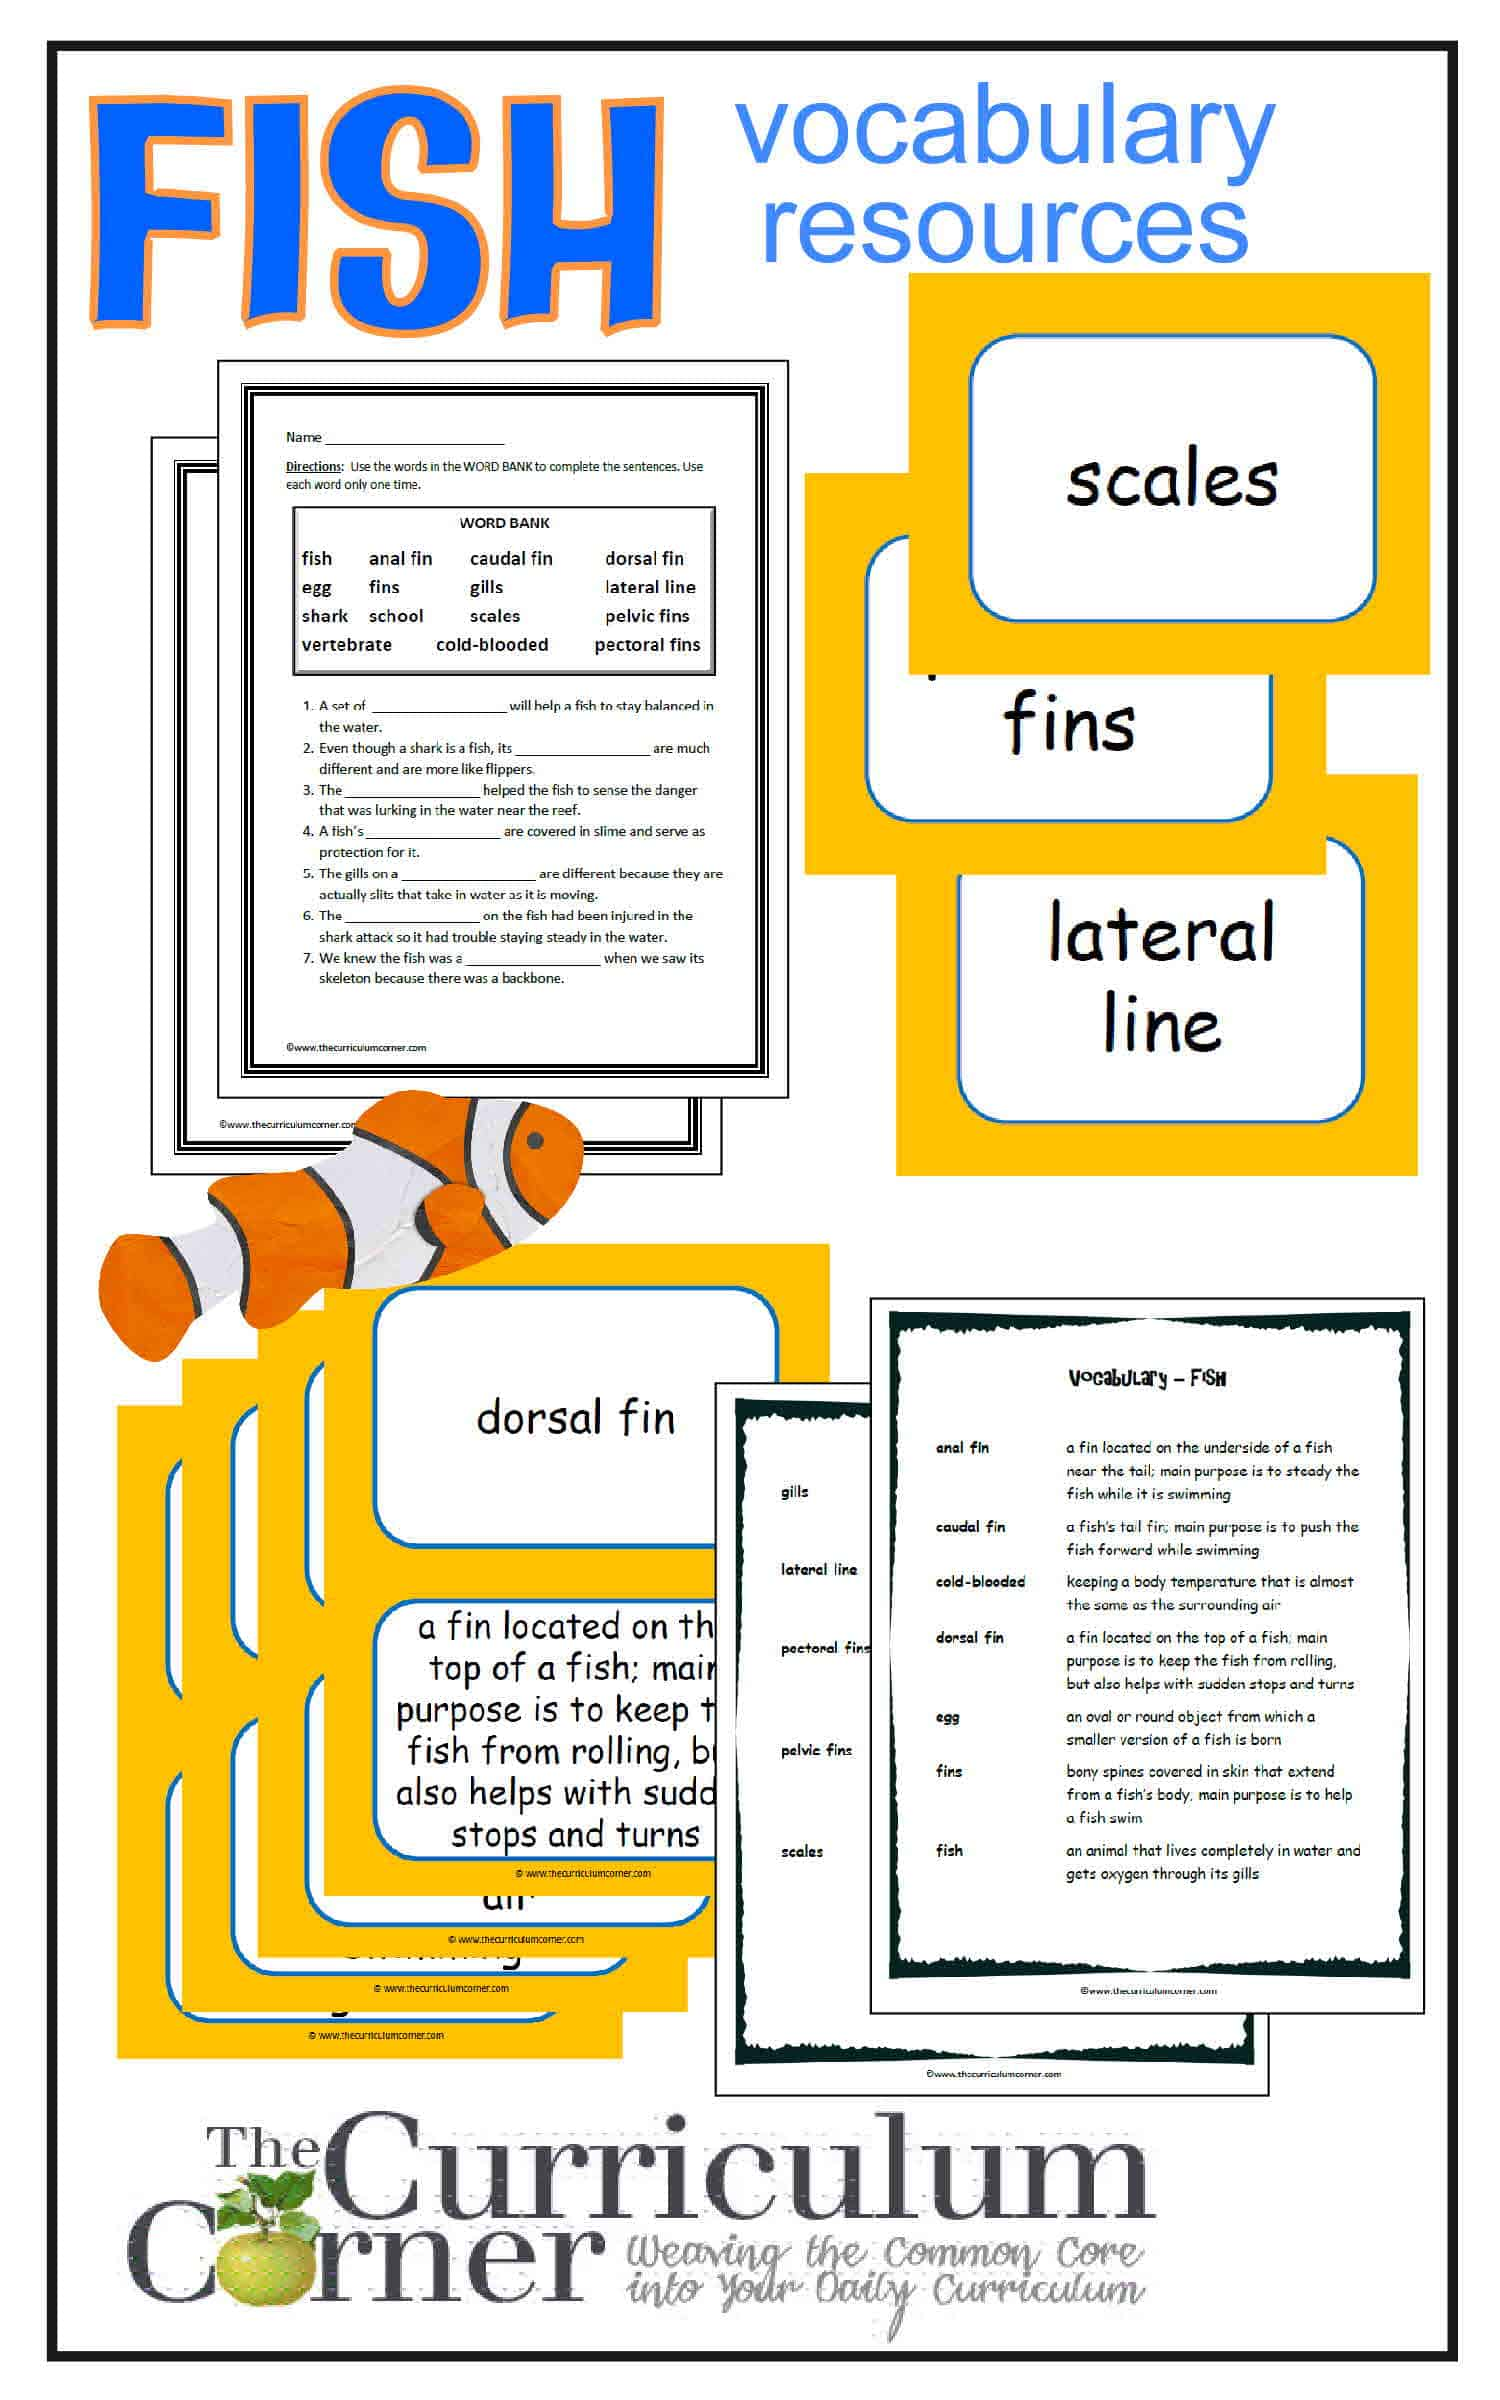 Weekly Themed Vocabulary Words & Activities – Set 4 (Fish)